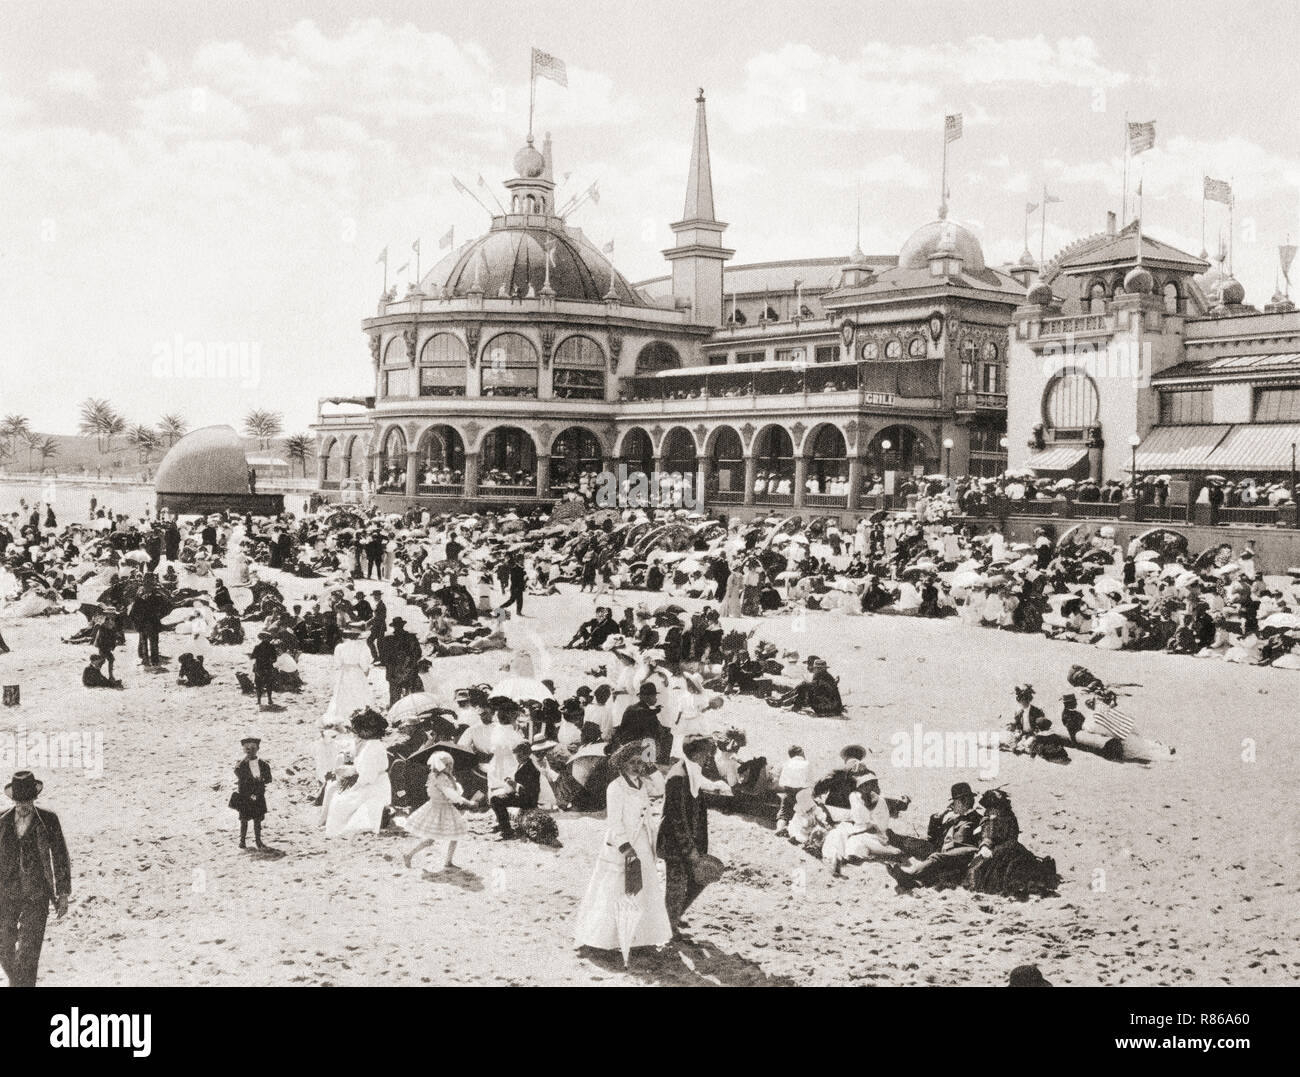 The casino and natatorium aka the plunge,  part of the Santa Cruz Beach Boardwalk, Santa Cruz, California, United States of America, c. 1915.  Adjoining the casino on the land side is the Hotel Casa del Rey and an extensive tent city.  From Wonderful California, published 1915. - Stock Image